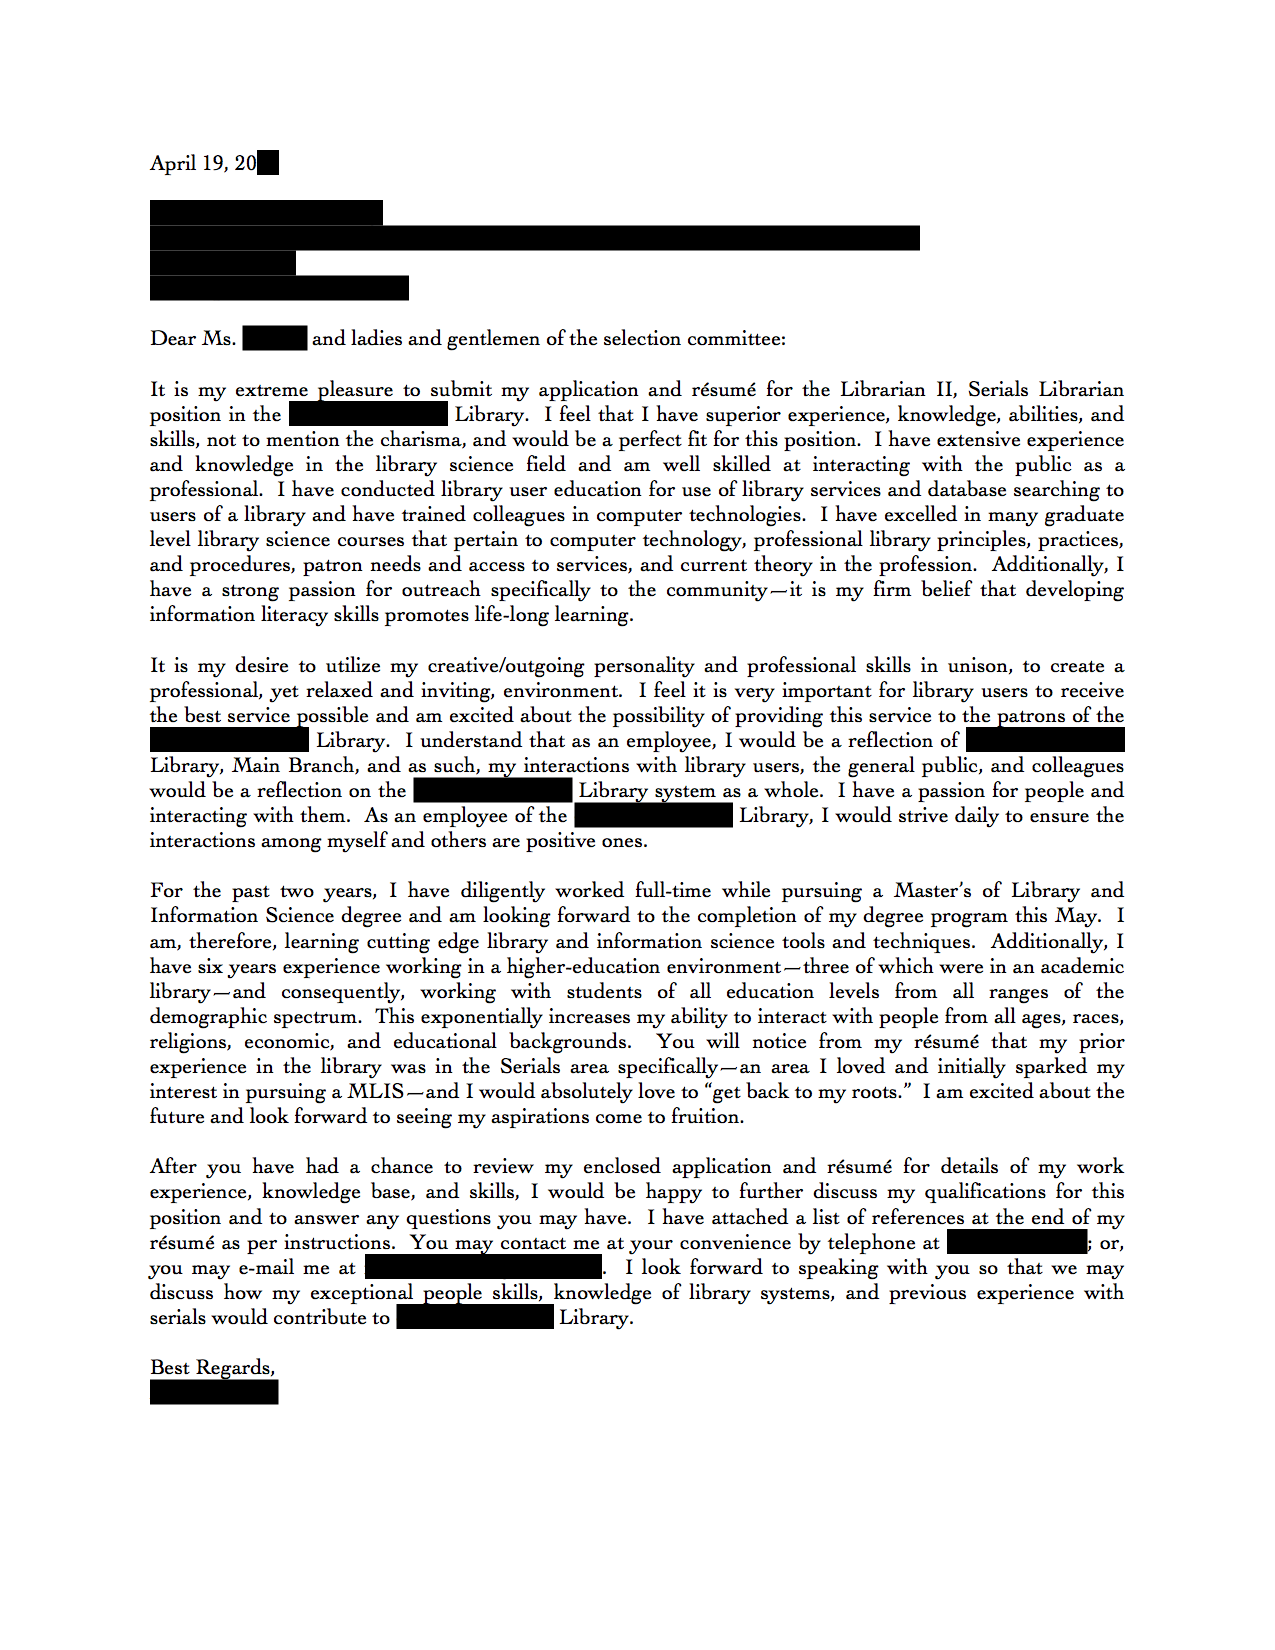 Serials and Acquisitions Librarian cover letter – Librarian Cover Letter